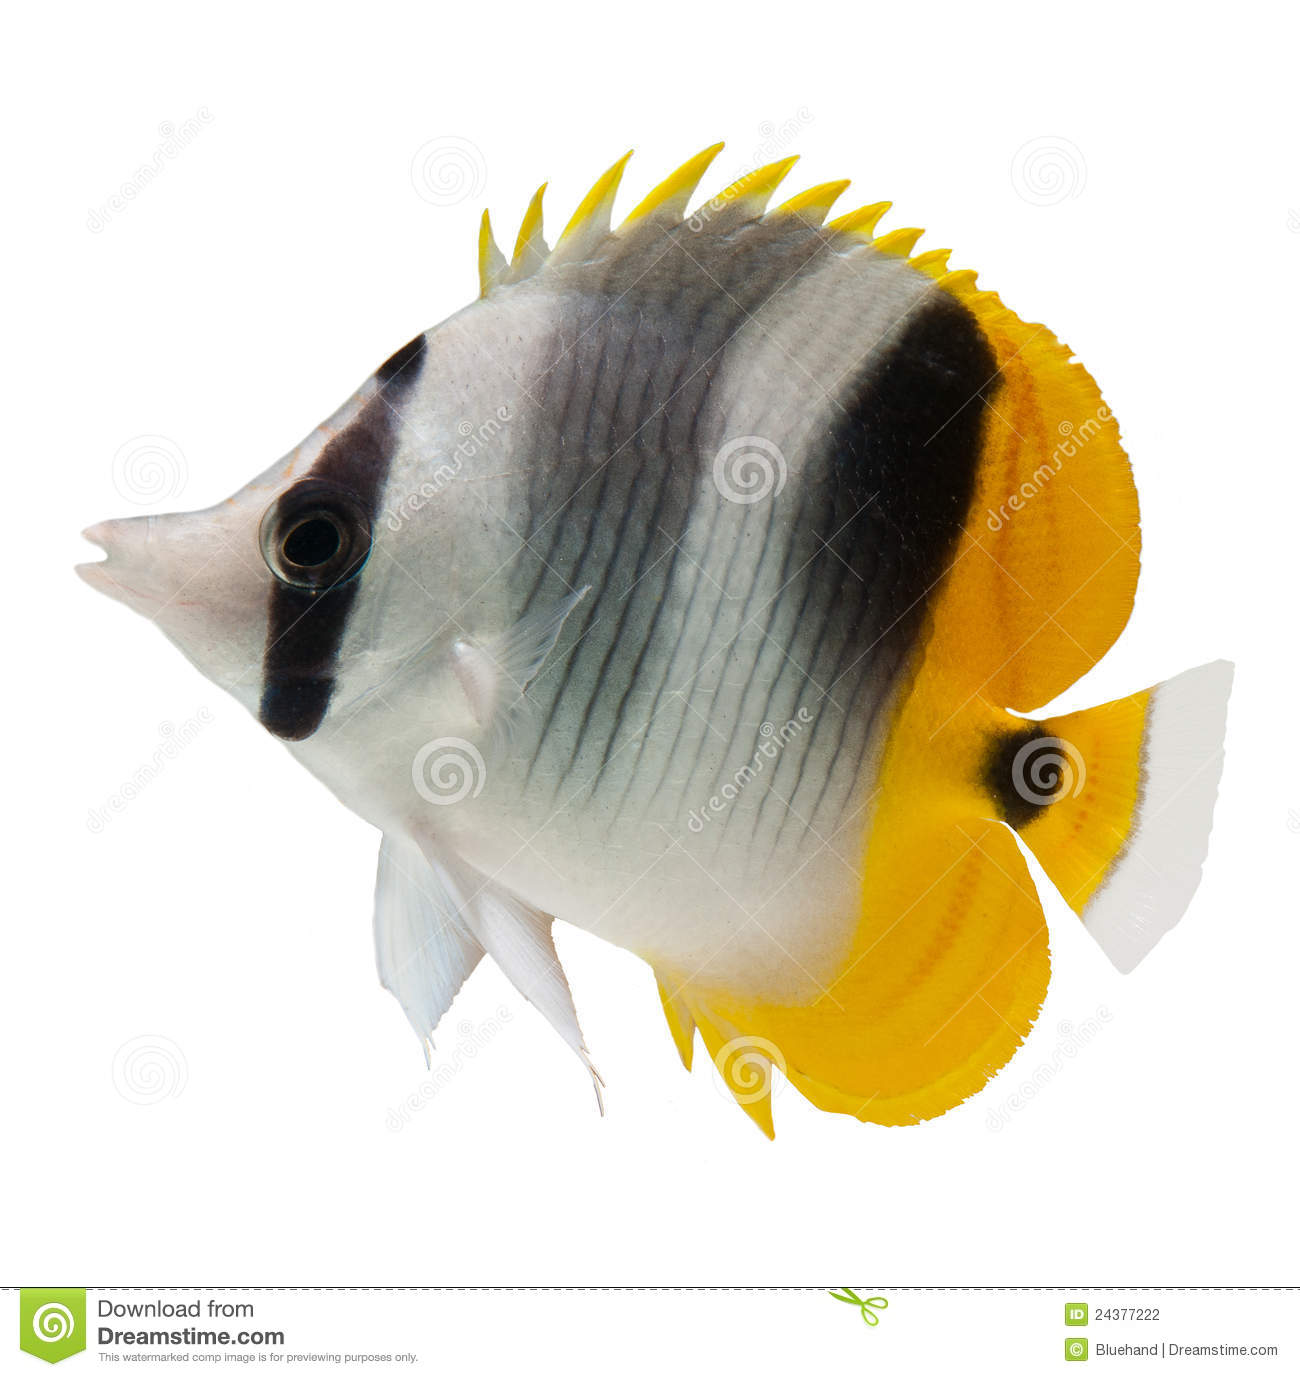 Butterflyfish reef fish on white background stock for Image of fish